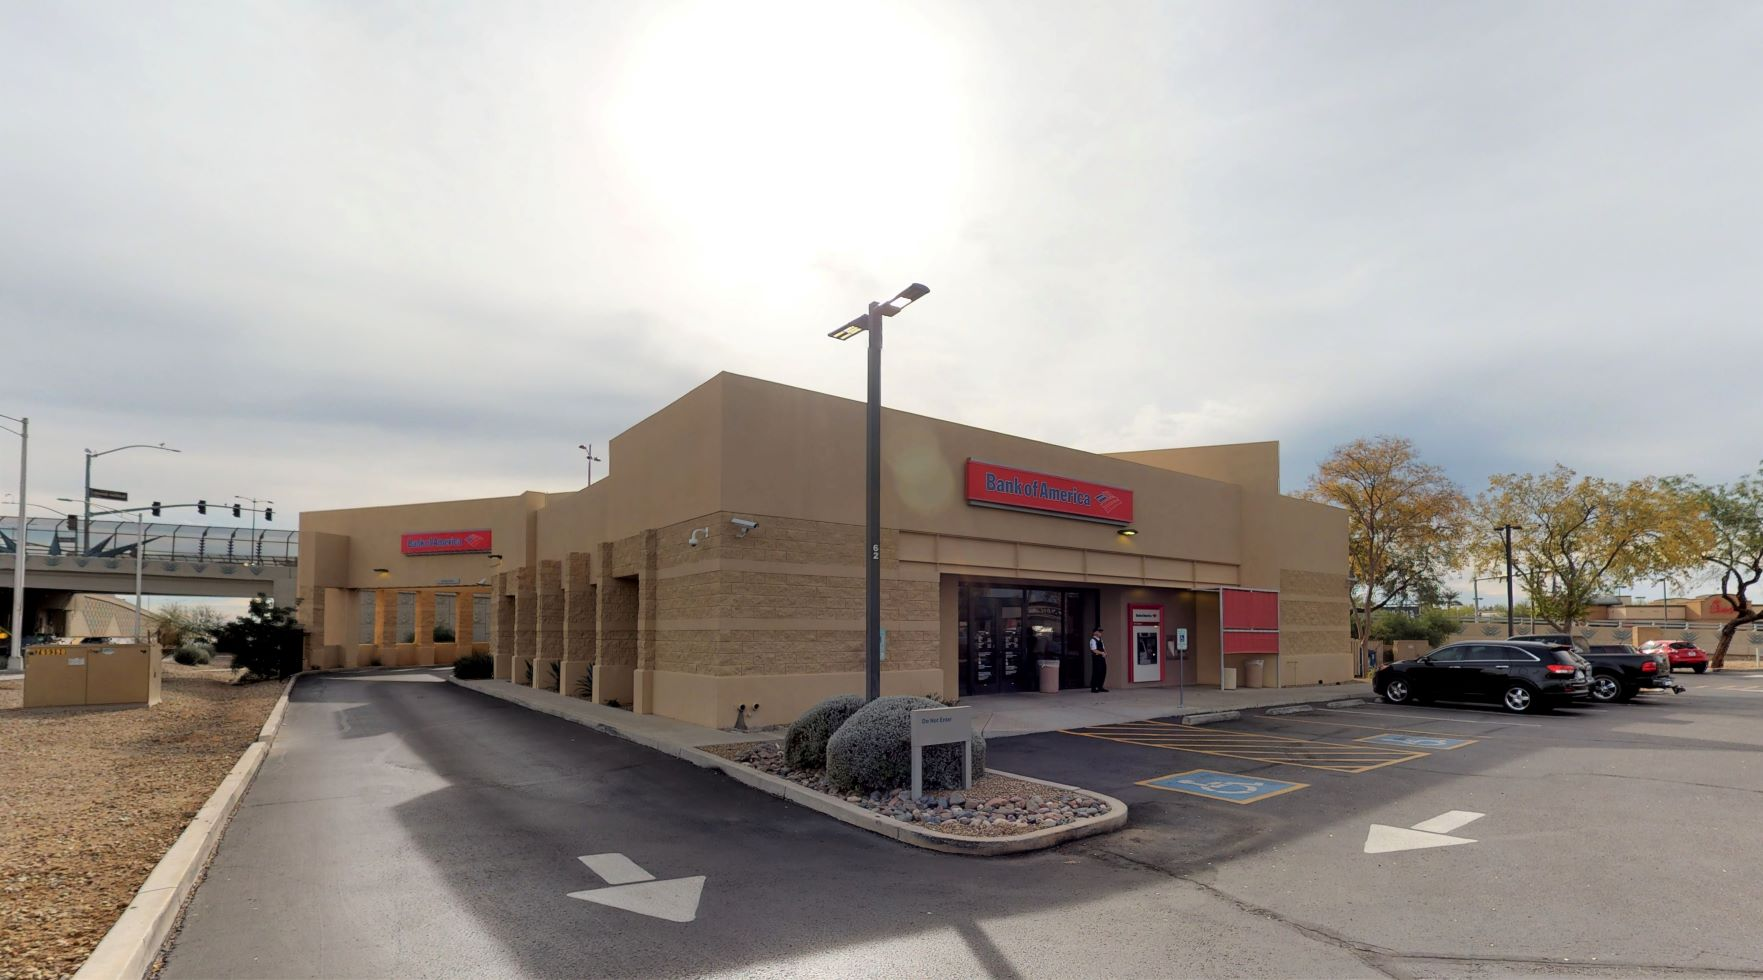 Bank of America financial center with drive-thru ATM   13702 W Bell Rd, Surprise, AZ 85374